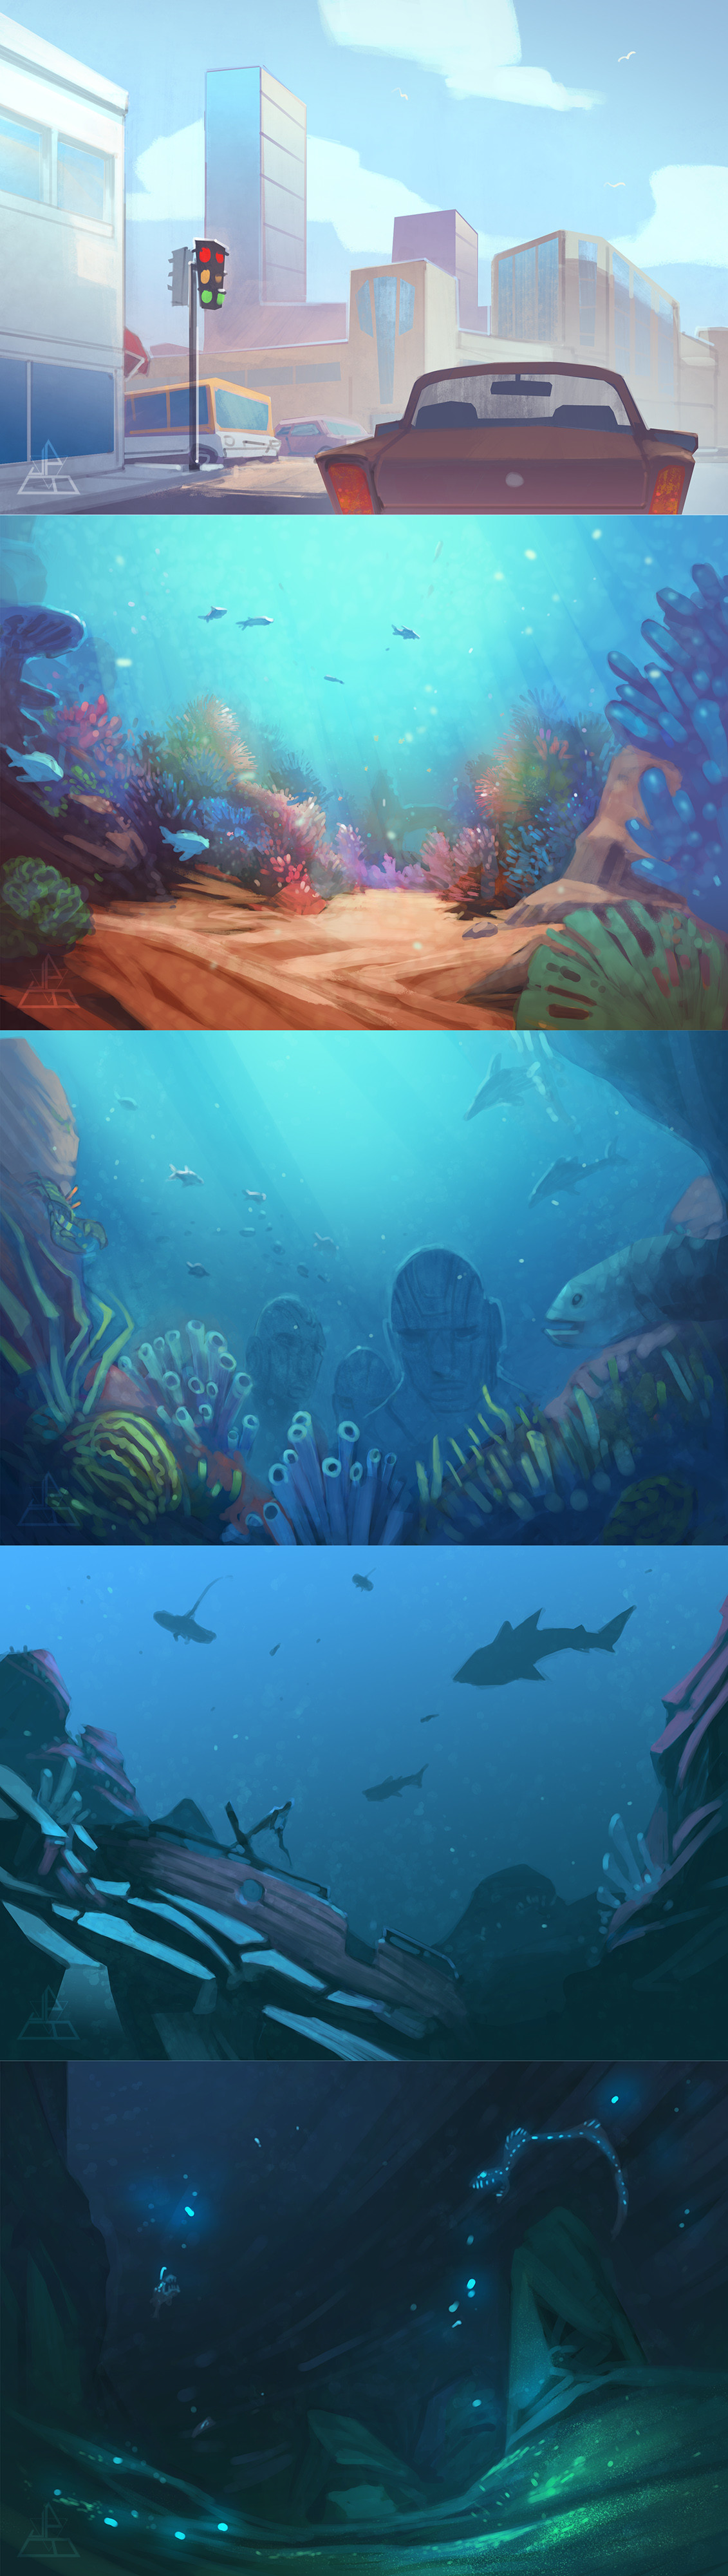 Colour and lighting concepts for surface environment through to ocean floor.